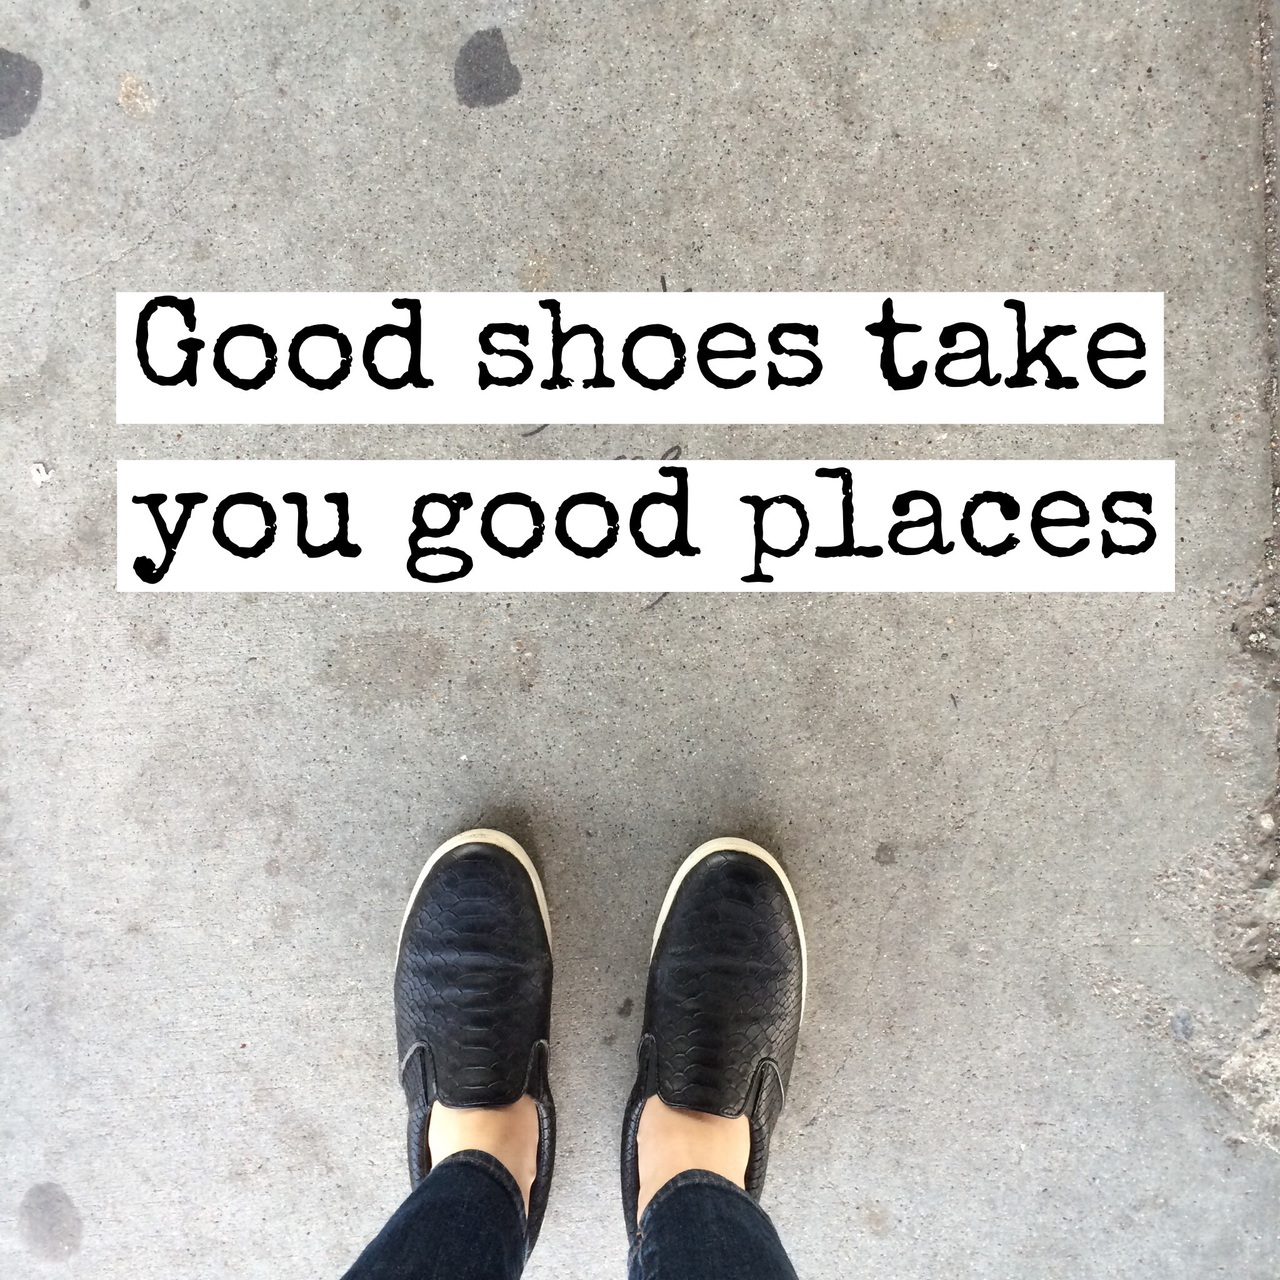 Quotes About Shoes And Friendship Good Shoes Take You Good Places Madewitheasel